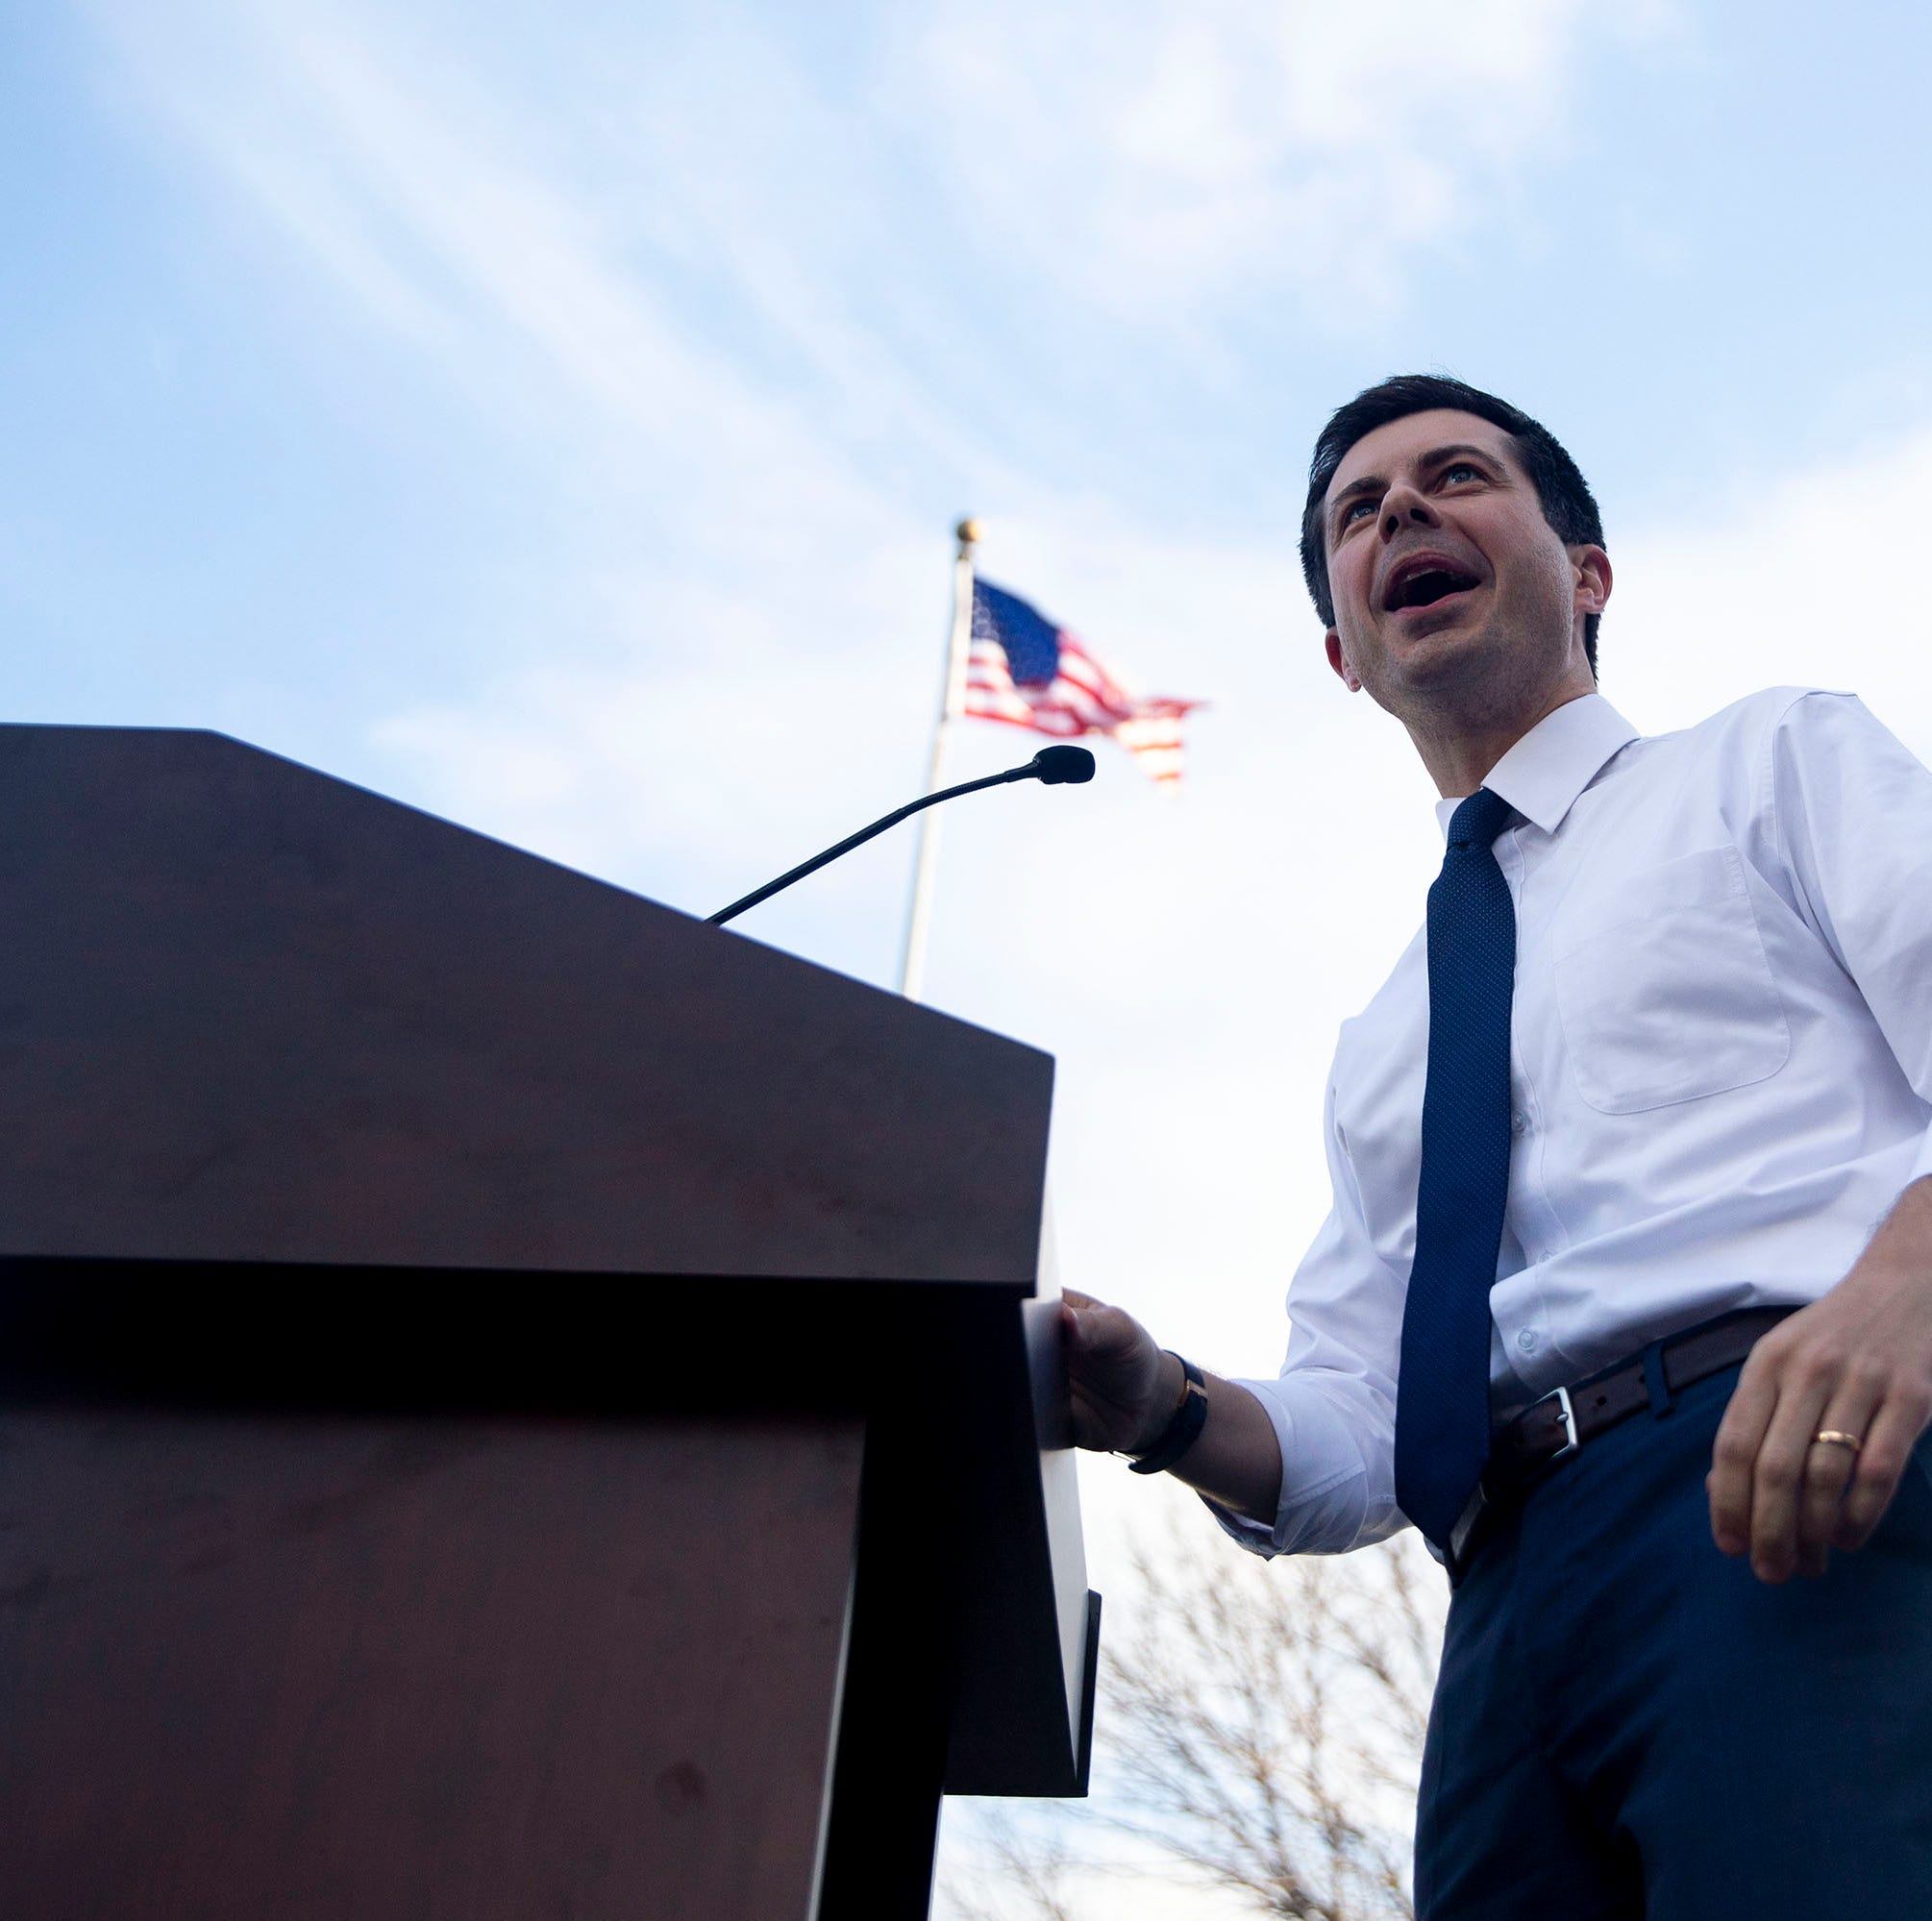 Pete Buttigieg, mayor of South Bend, Ind., speaks to a crowd of people outside of Franklin Junior High School on Tuesday, April 16, 2019, in Des Moines. This is Buttigieg's first event in Des Moines since announcing his campaign for president.